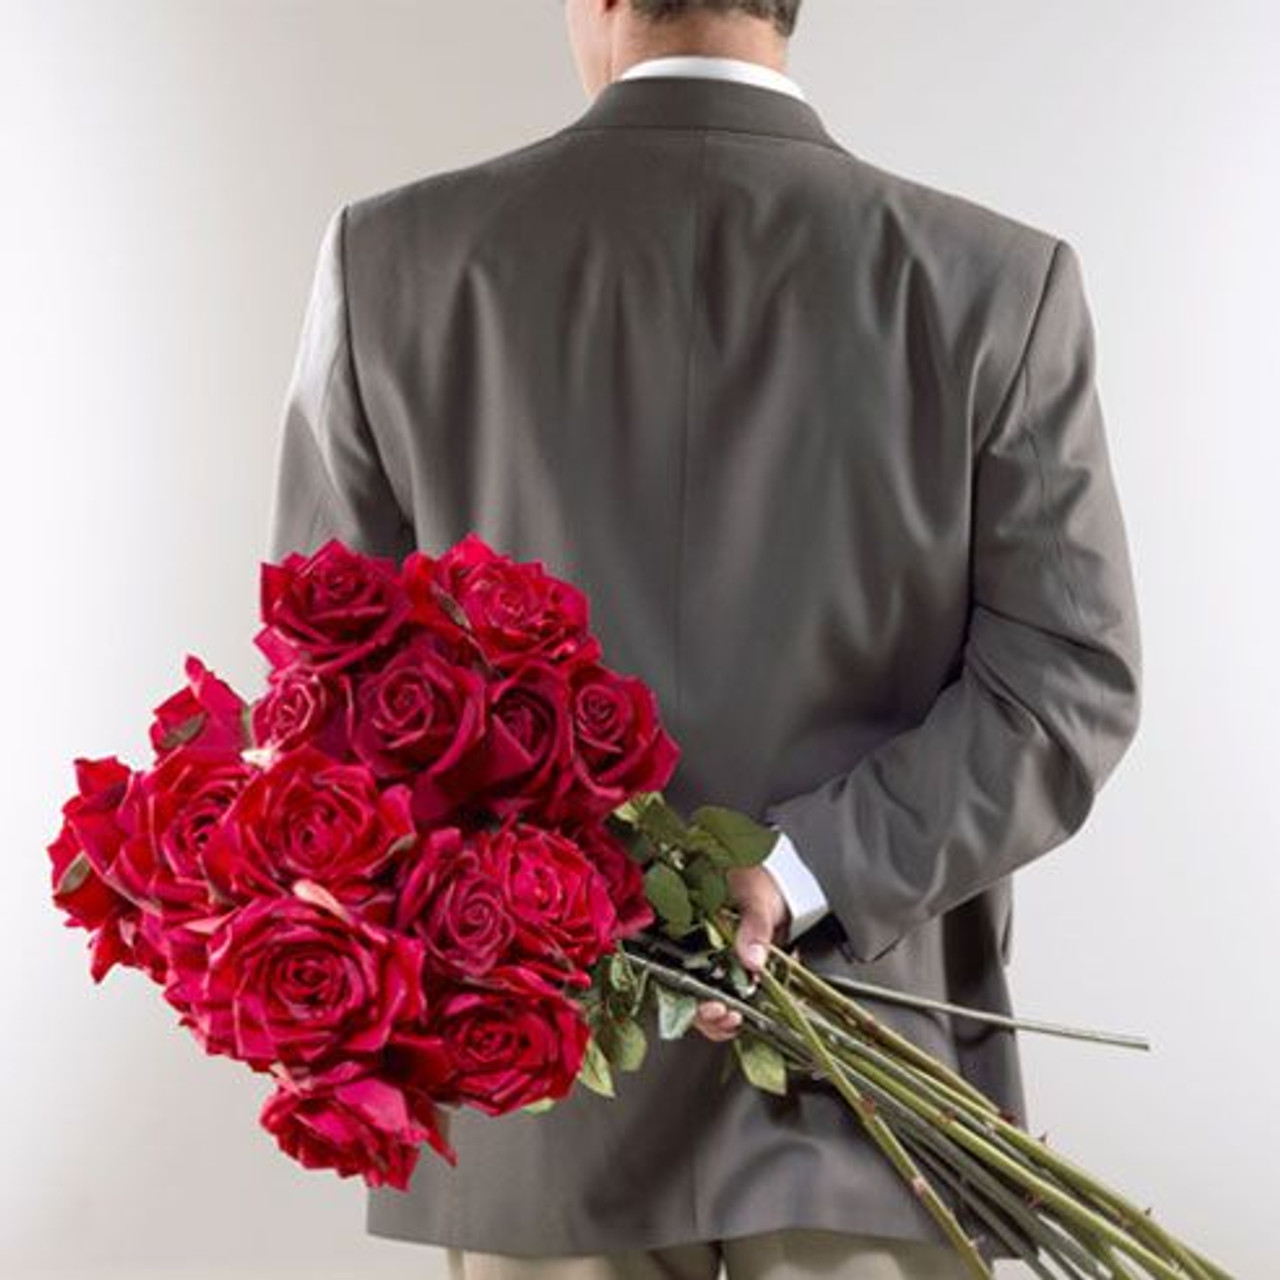 Year of Romance (12 bouquets of roses)